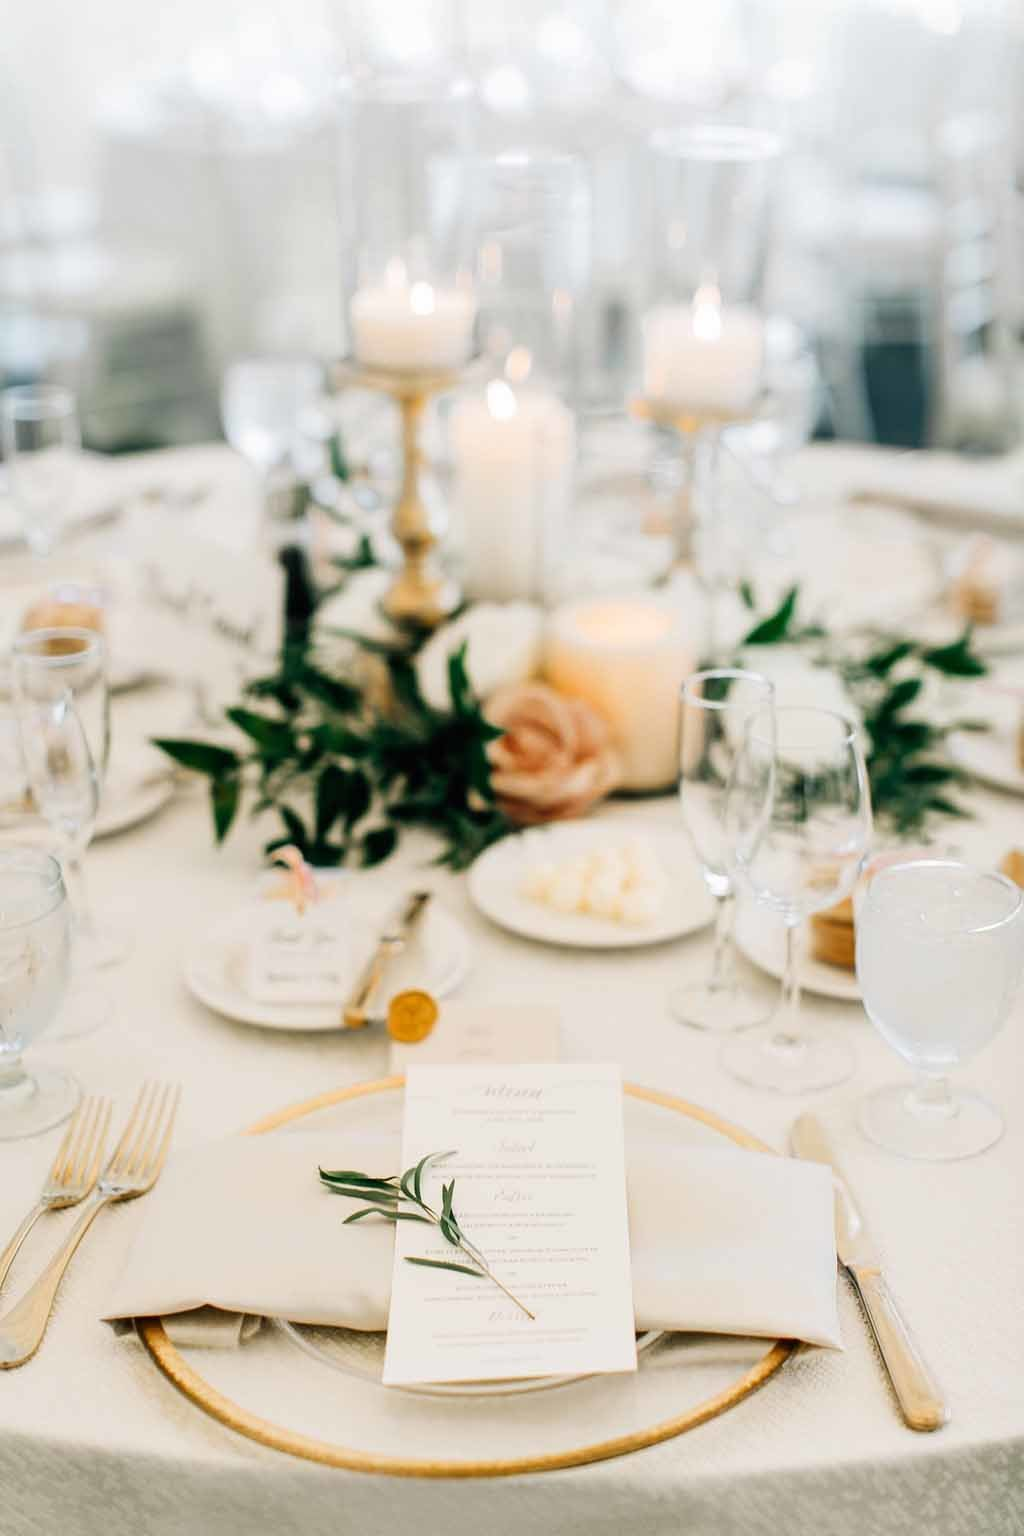 Luxury tent wedding table setting in gold and white with napkin green detail.